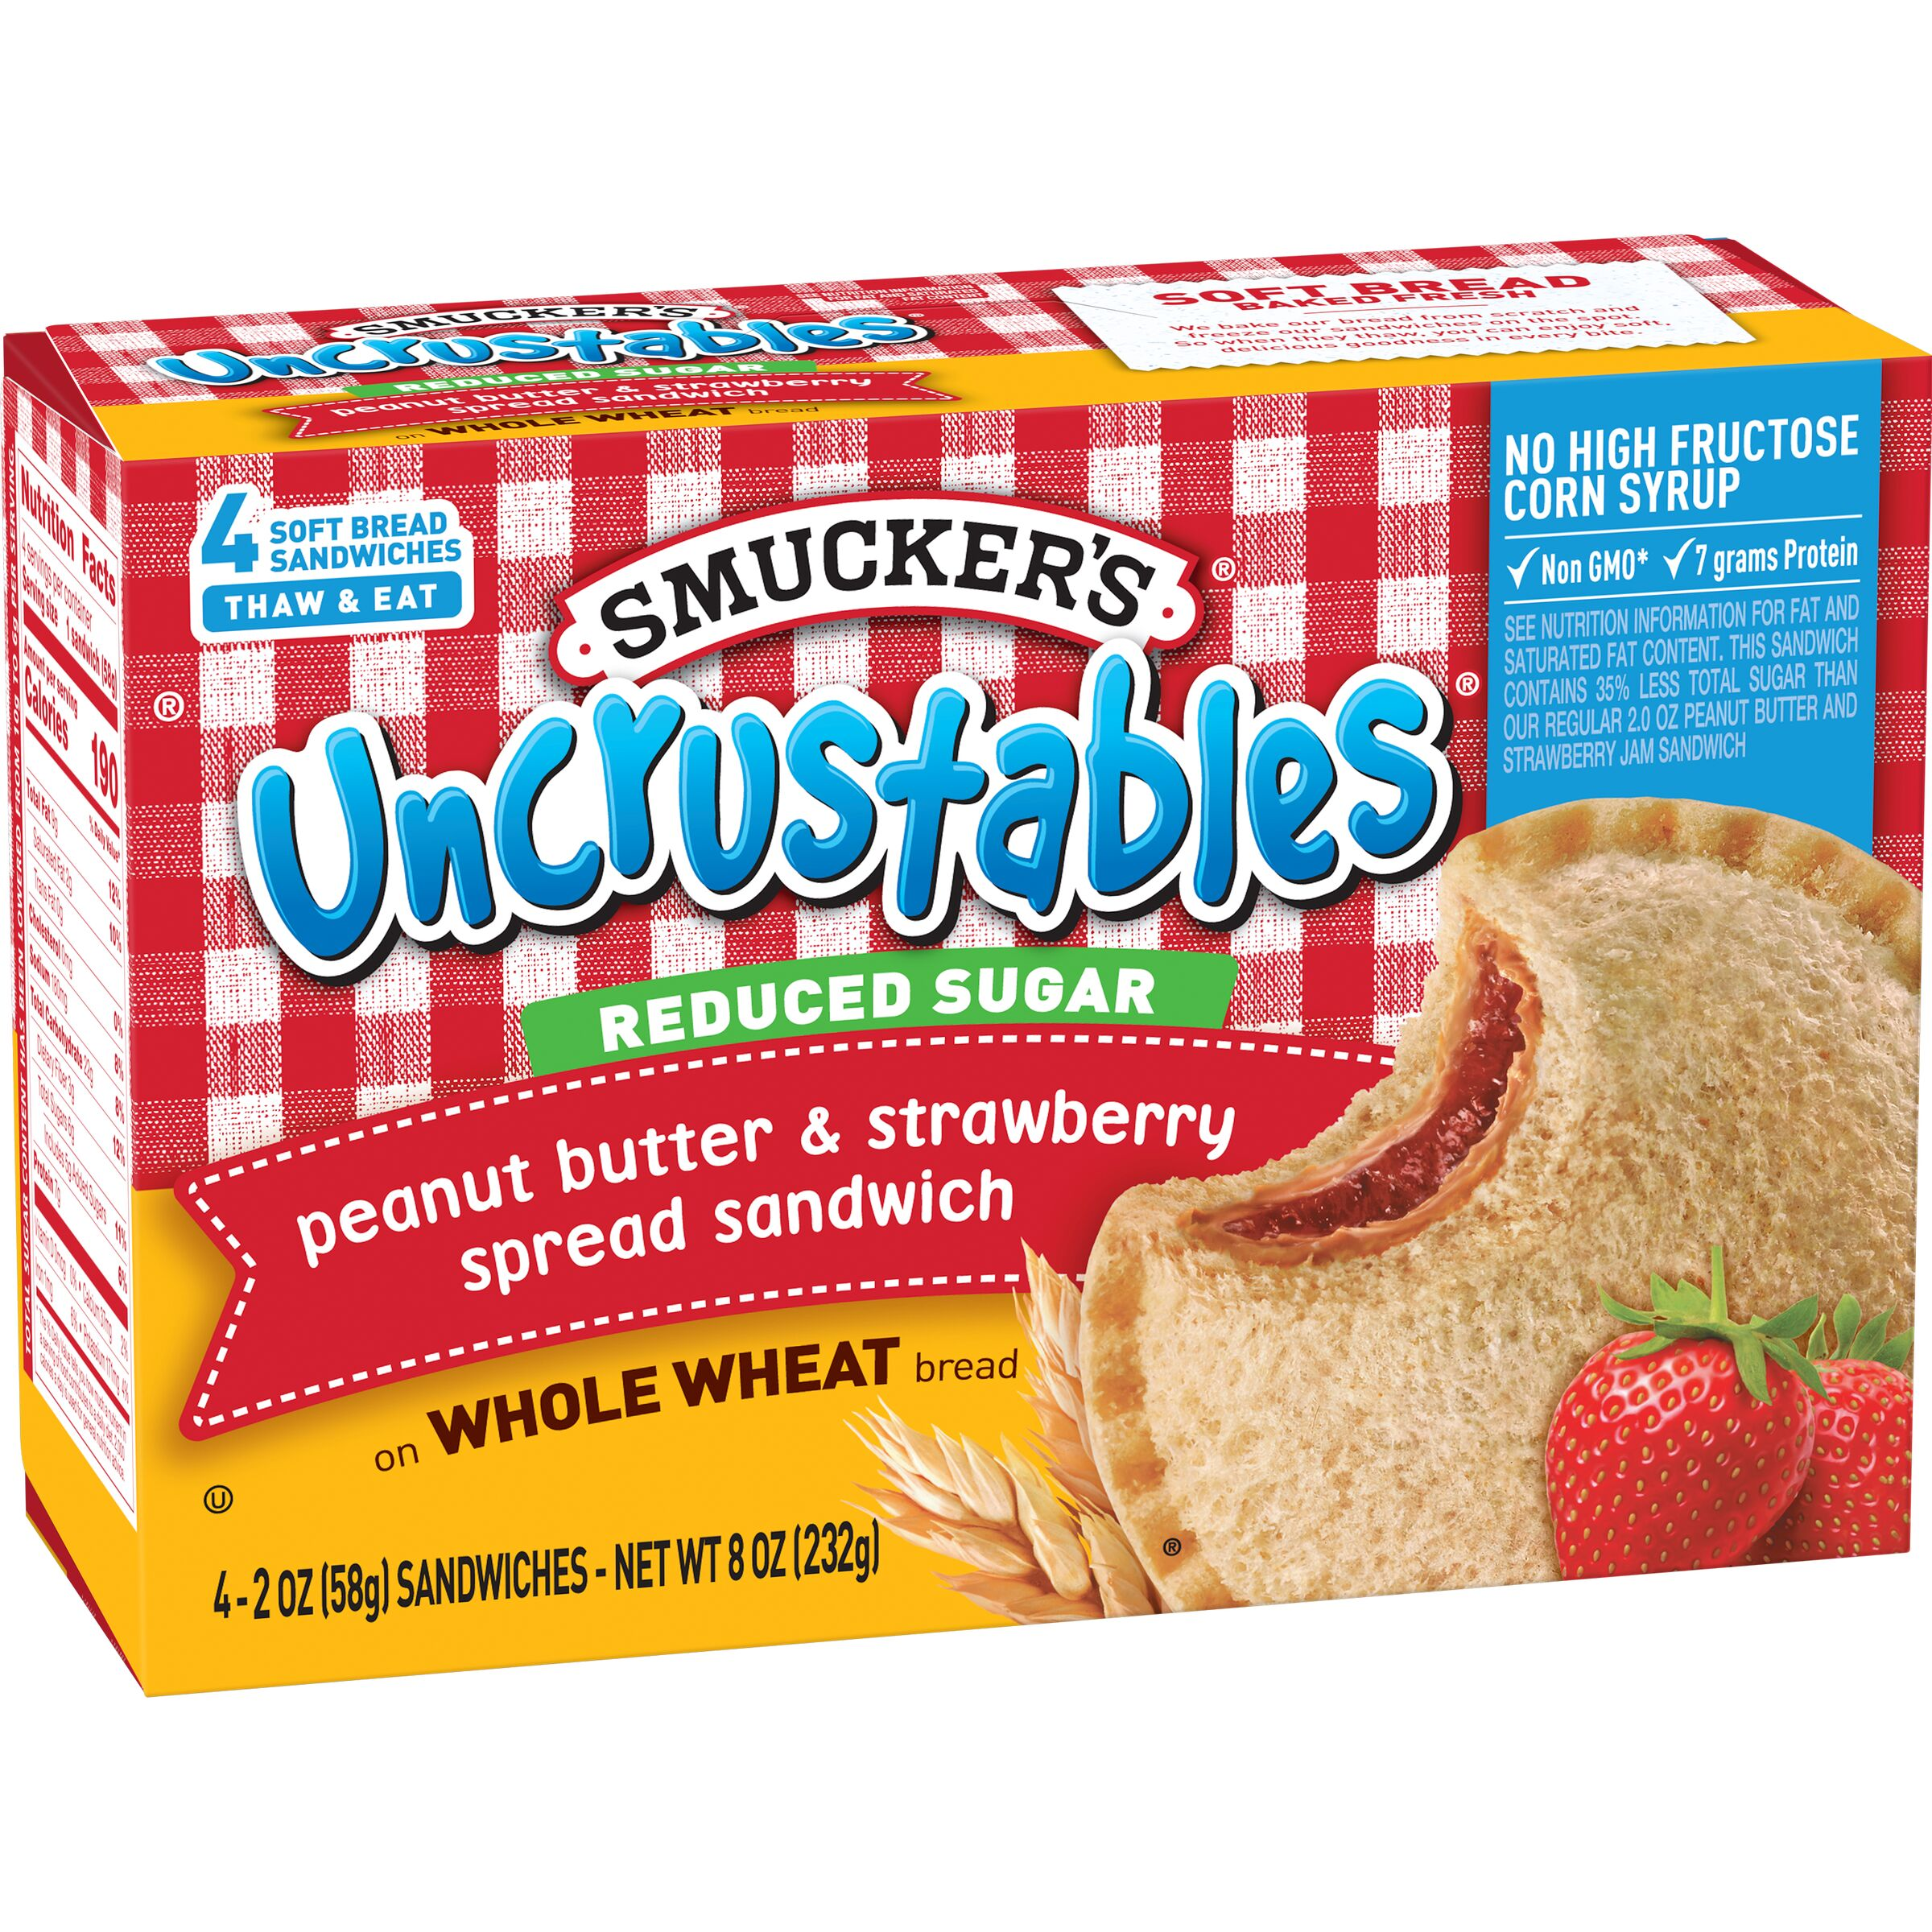 Smucker's<sup>&reg;</sup> Uncrustables Reduced Sugar Peanut Butter & Strawberry Spread Sandwich on Whole Wheat